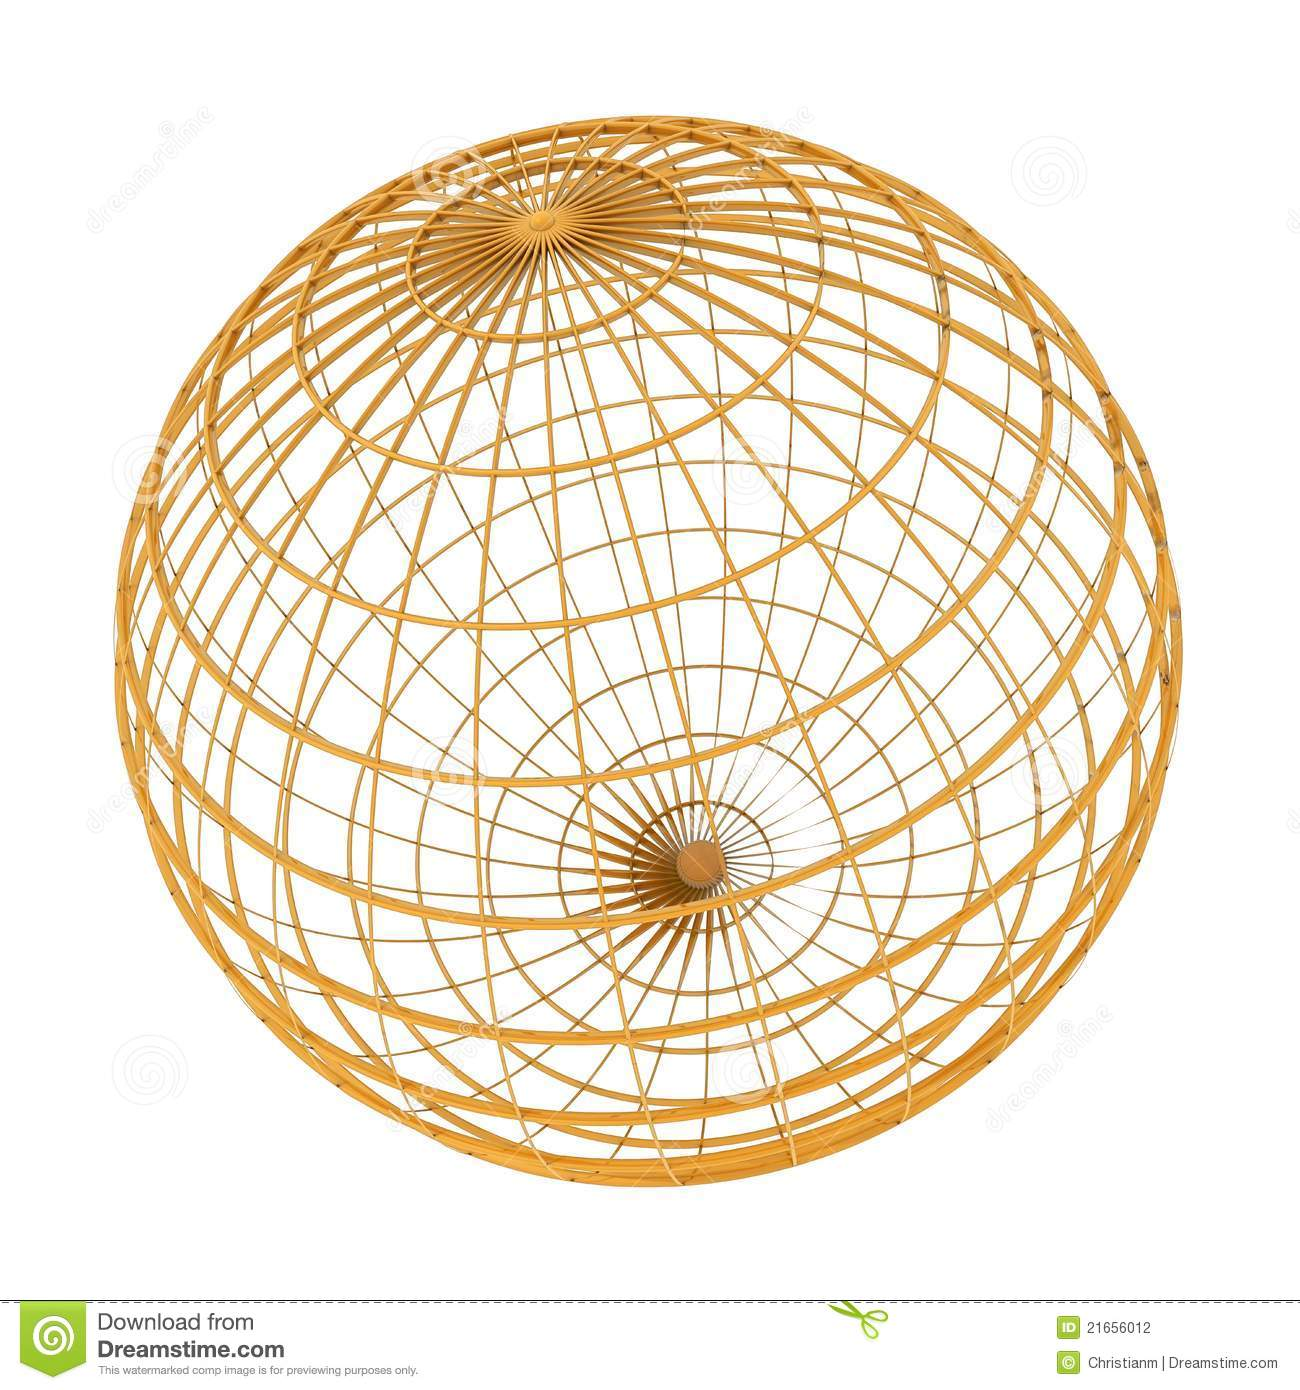 Earth Wireframe Gold Wire Center Lamp Making Supplies And Wiring Kits 30551a10 Table Golden Globe Stock Illustration Of Network Rh Dreamstime Com Planet